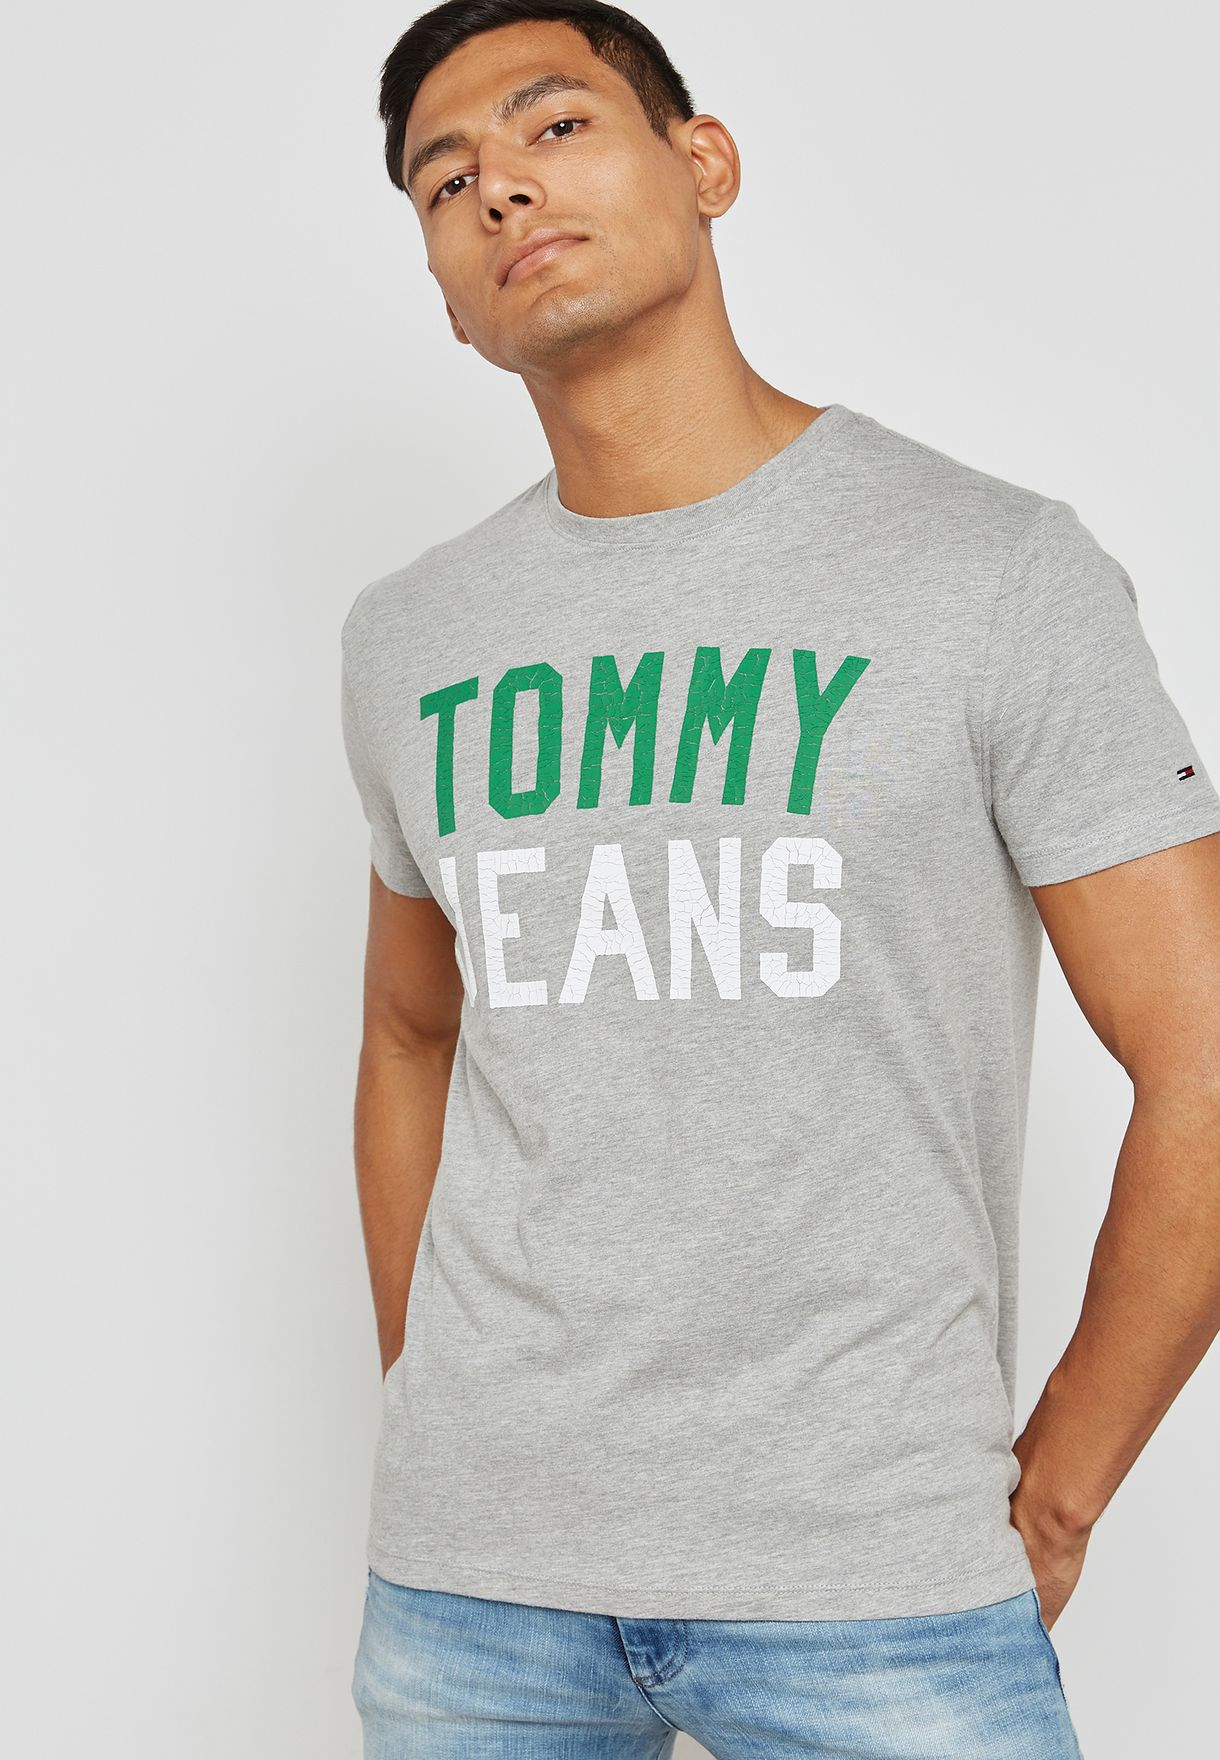 e4b71655 Shop Tommy Jeans grey Tommy Jeans Collegiate Capsule T-Shirt ...